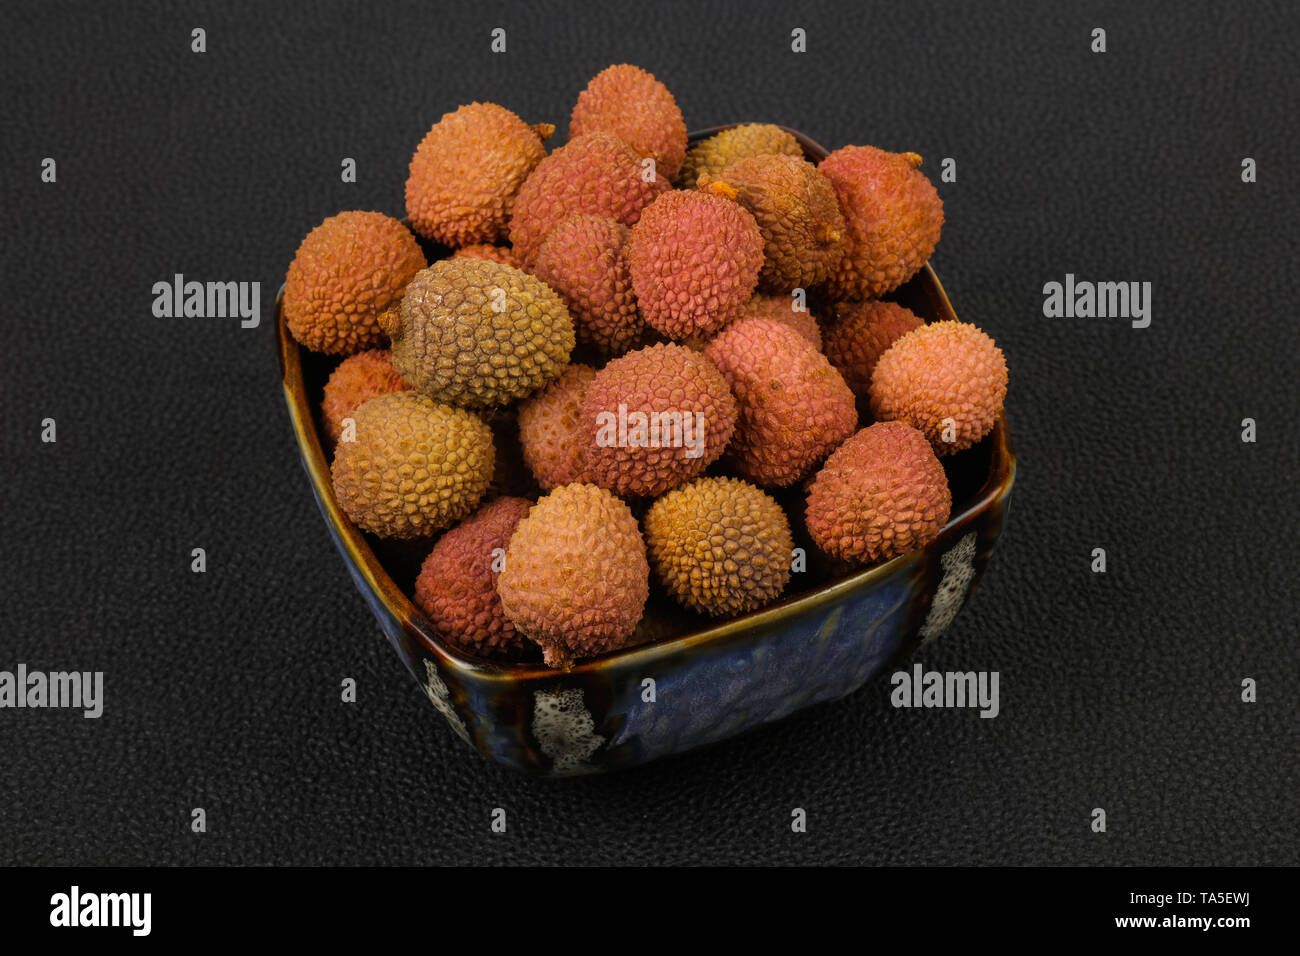 Tropical fruit lychee in the bowl - Stock Image